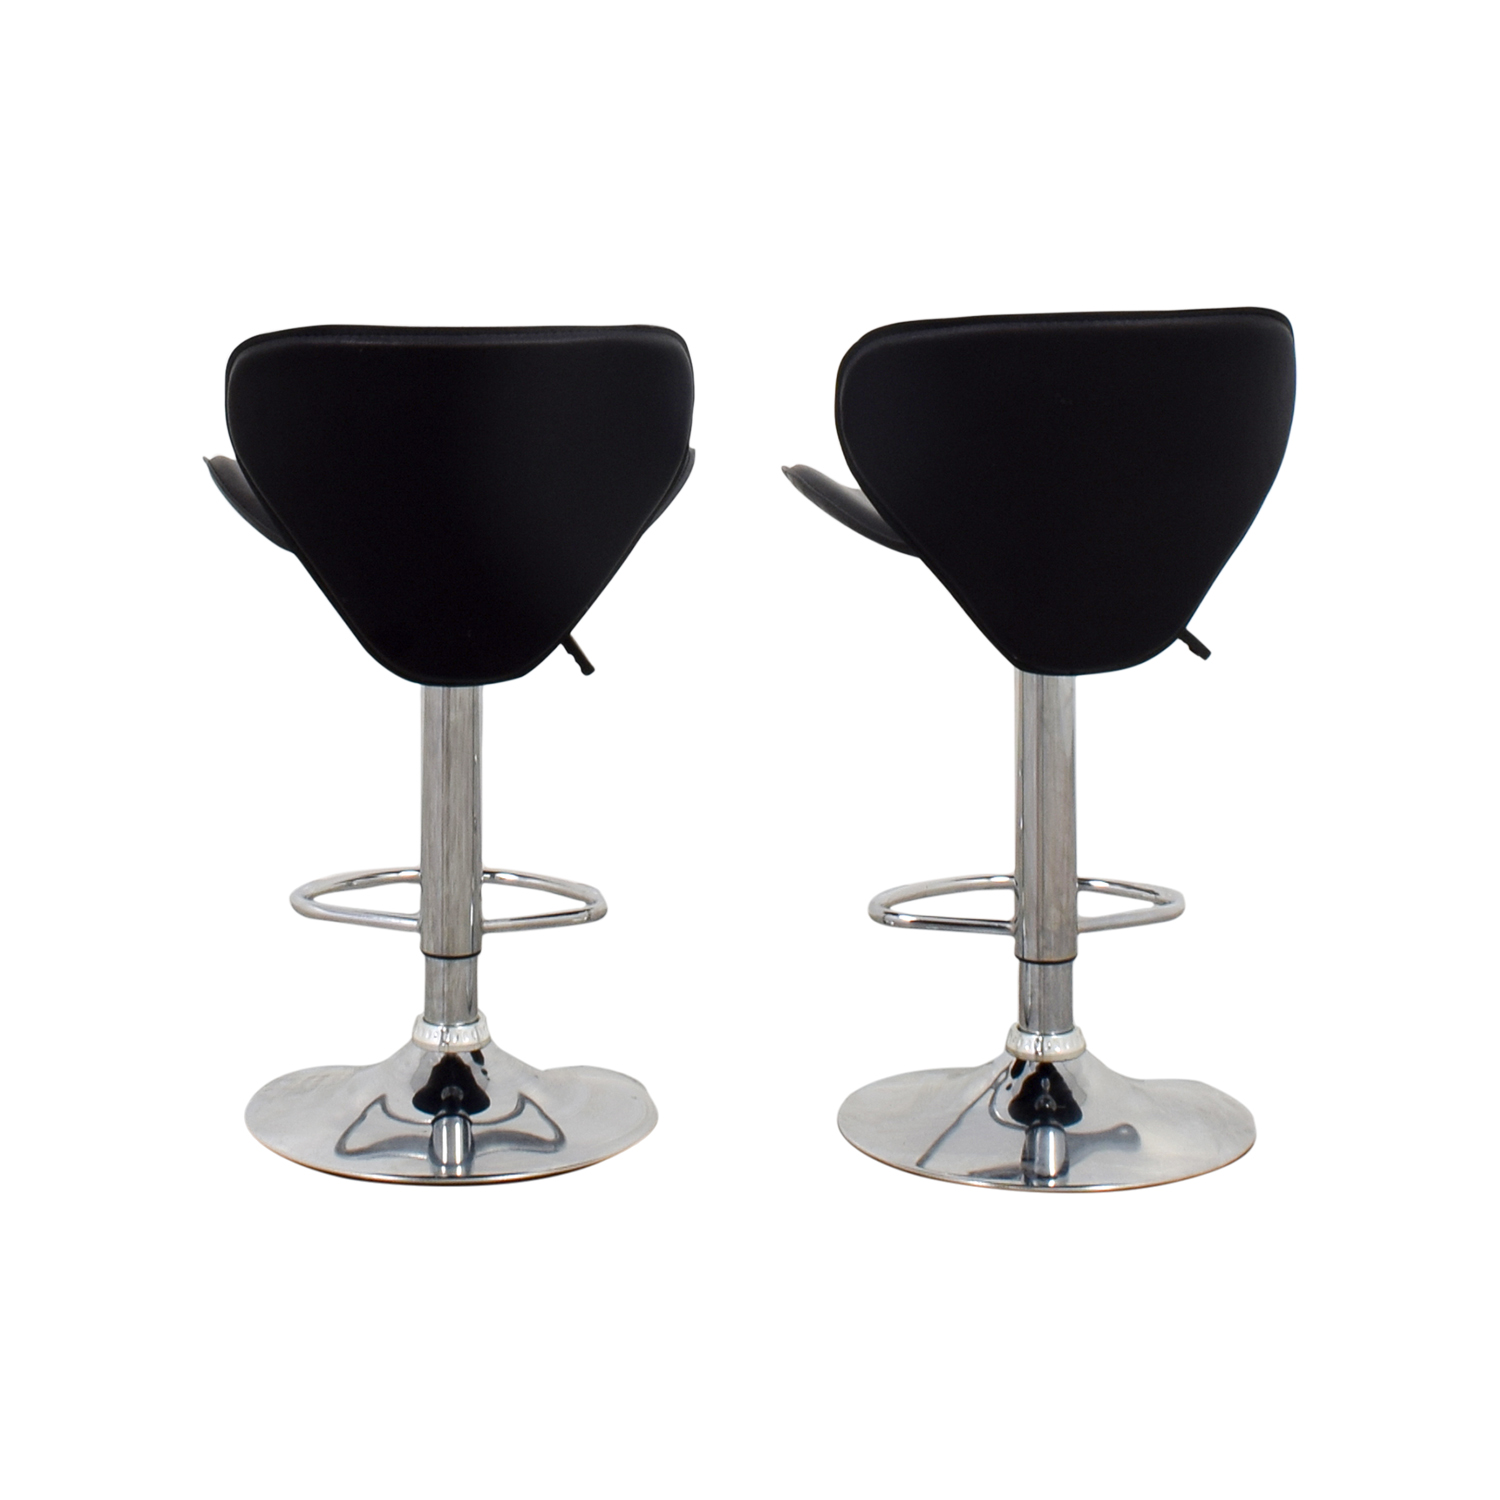 buy Black Leather Adjustable Bar Stools